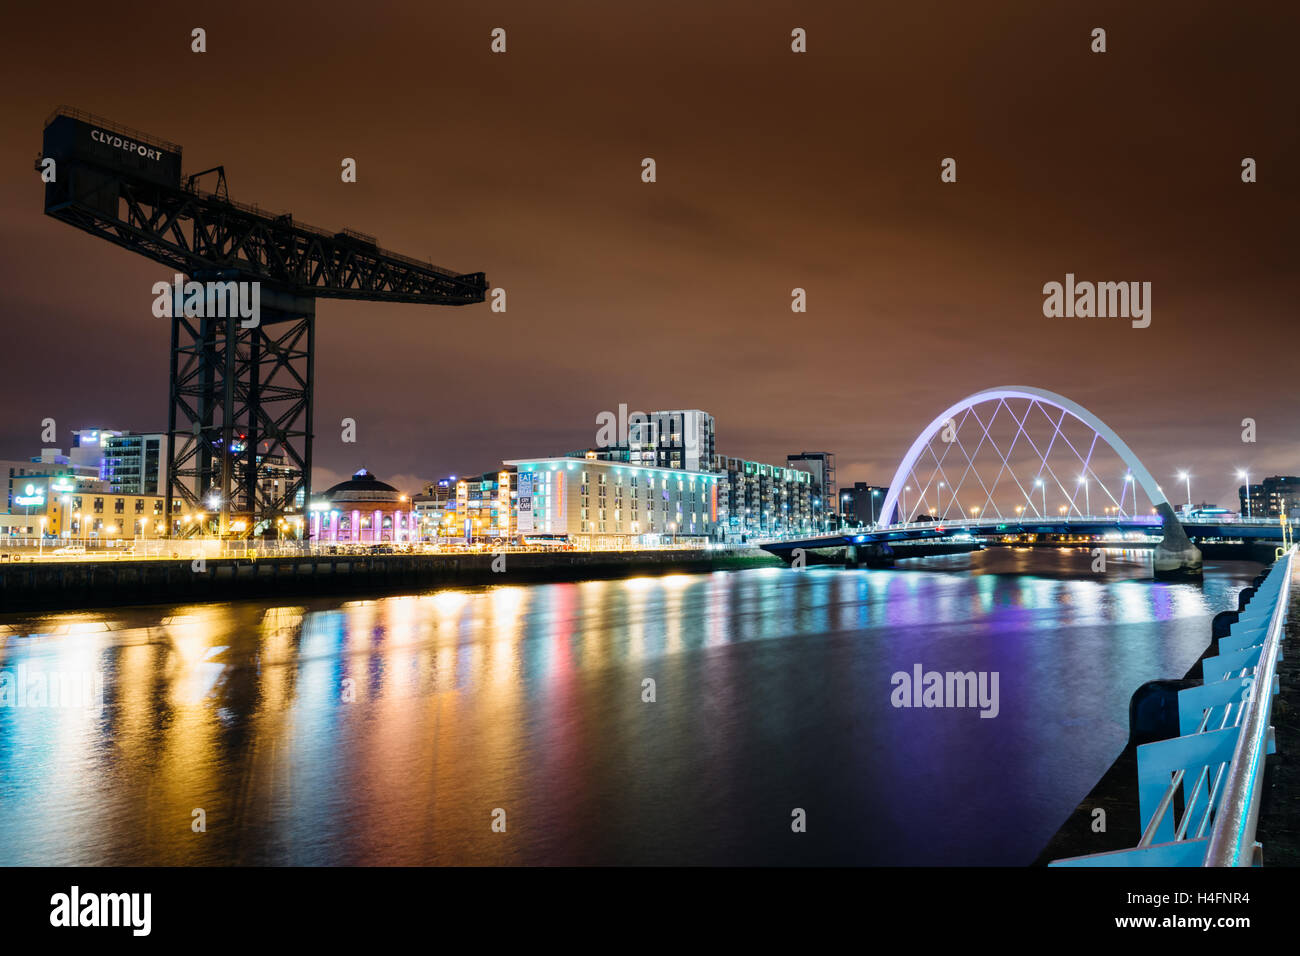 The Finnieston Crane and the Clyde Arc: a view from Pacific Quay on the banks of the river Clyde, Glasgow, Scotland - Stock Image